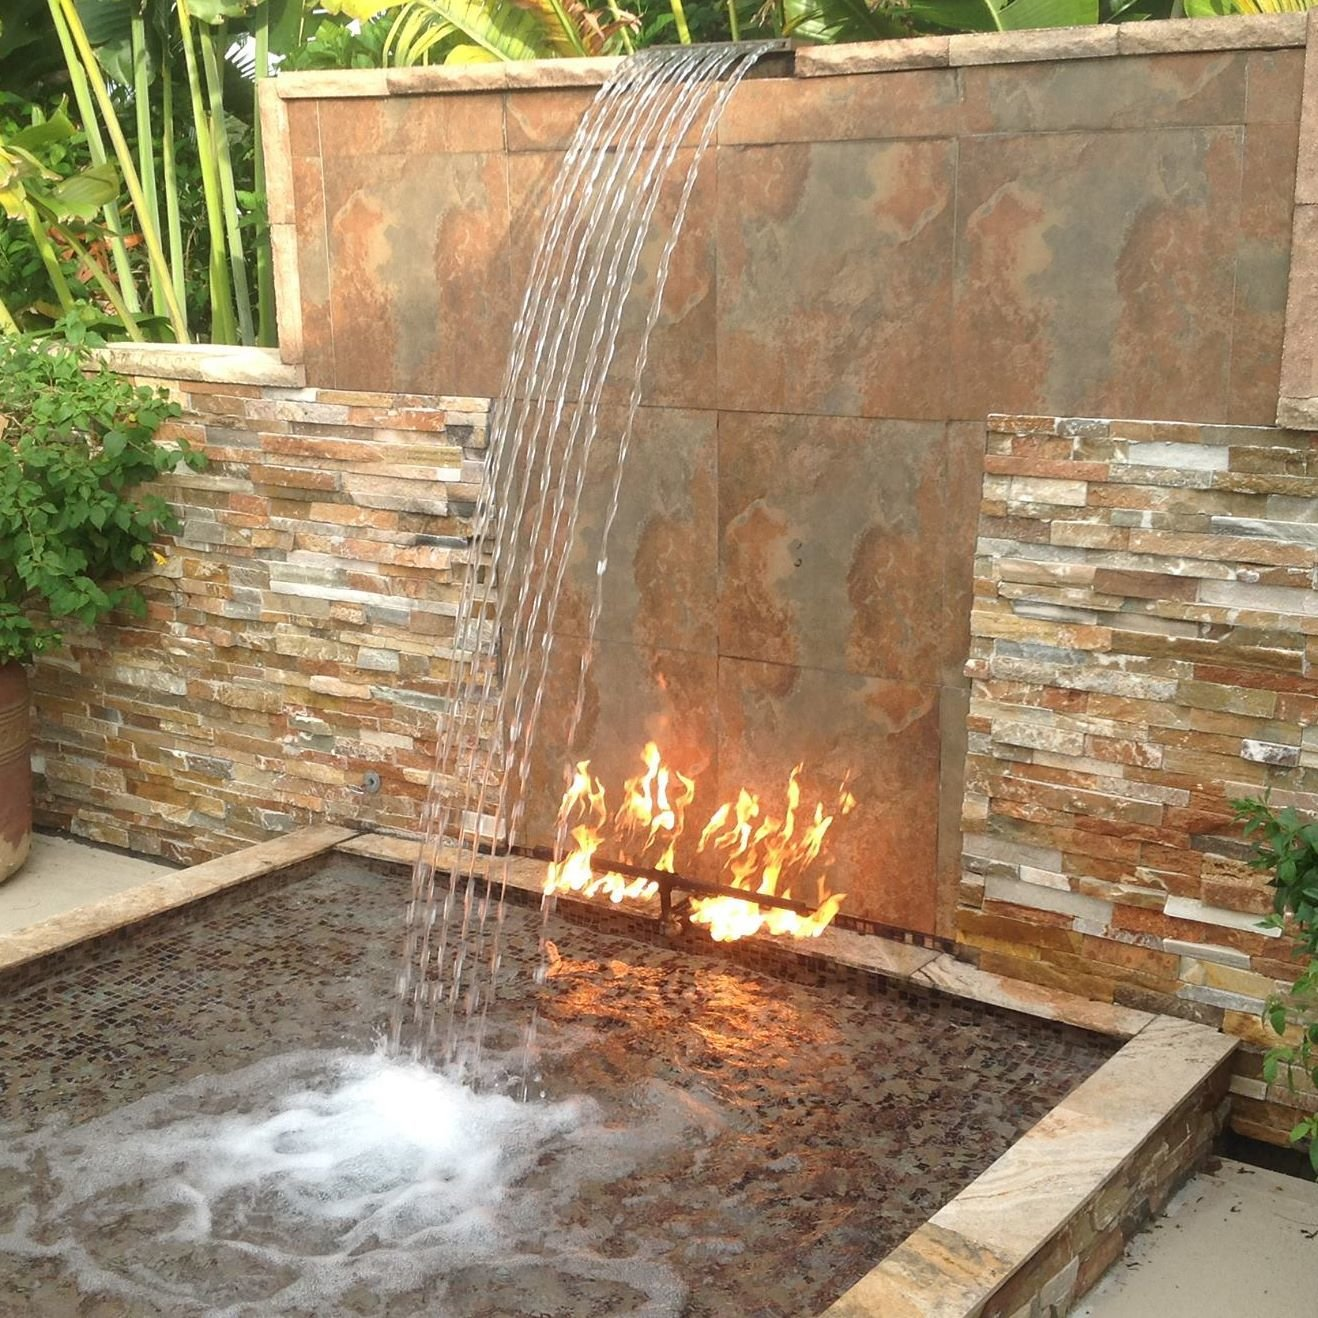 Easy fire pits easyfirepits twitter for Fire pit easy